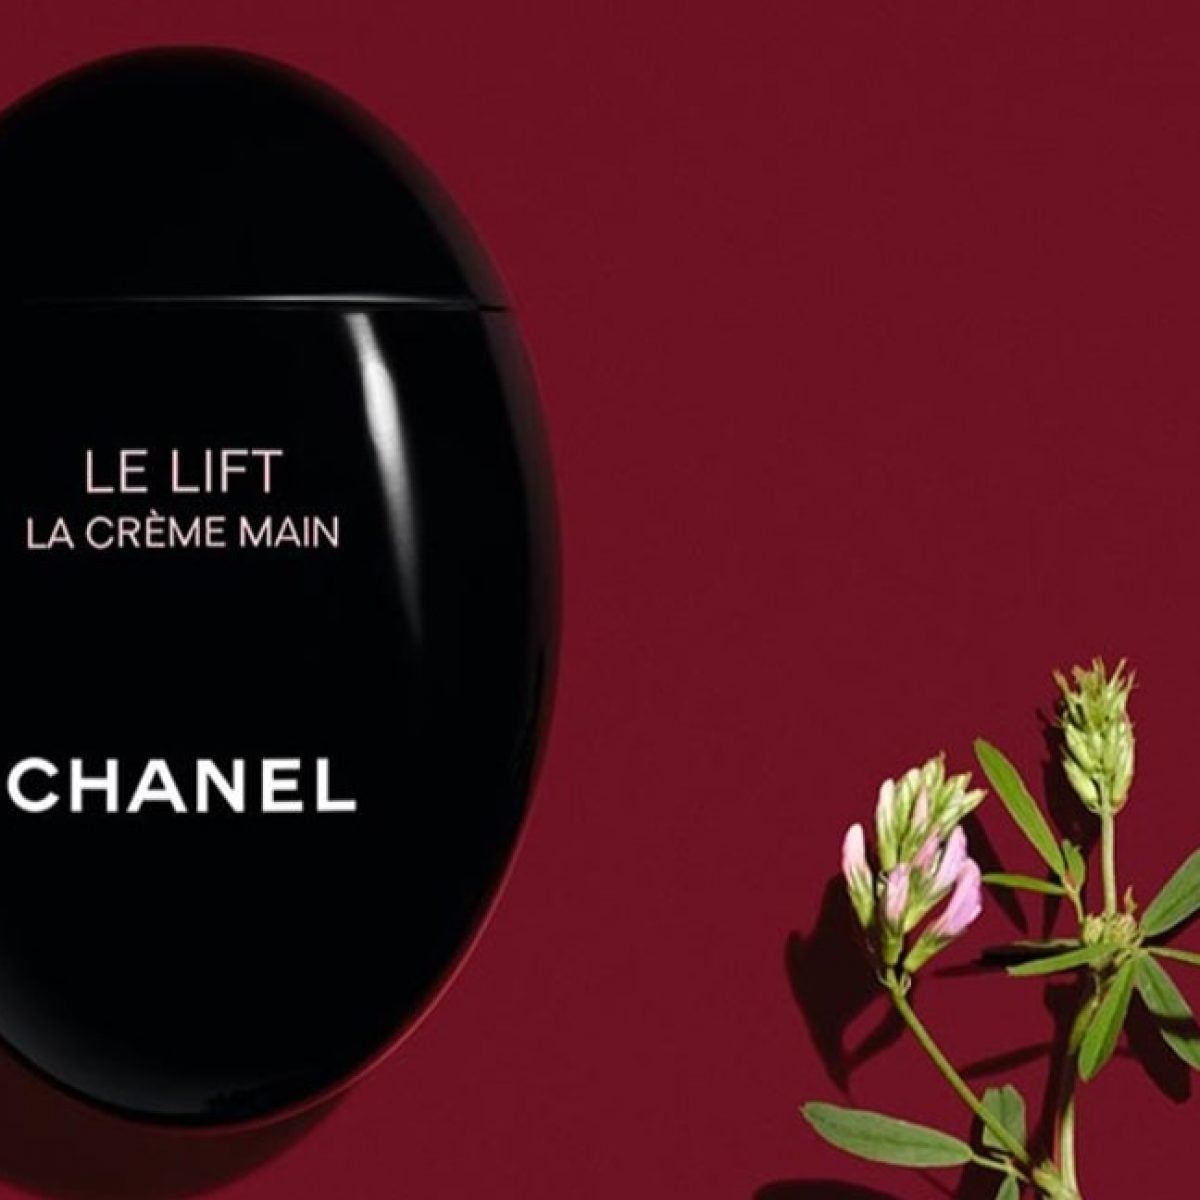 Add These 5 Luxury Beauty Items To Your Handbag